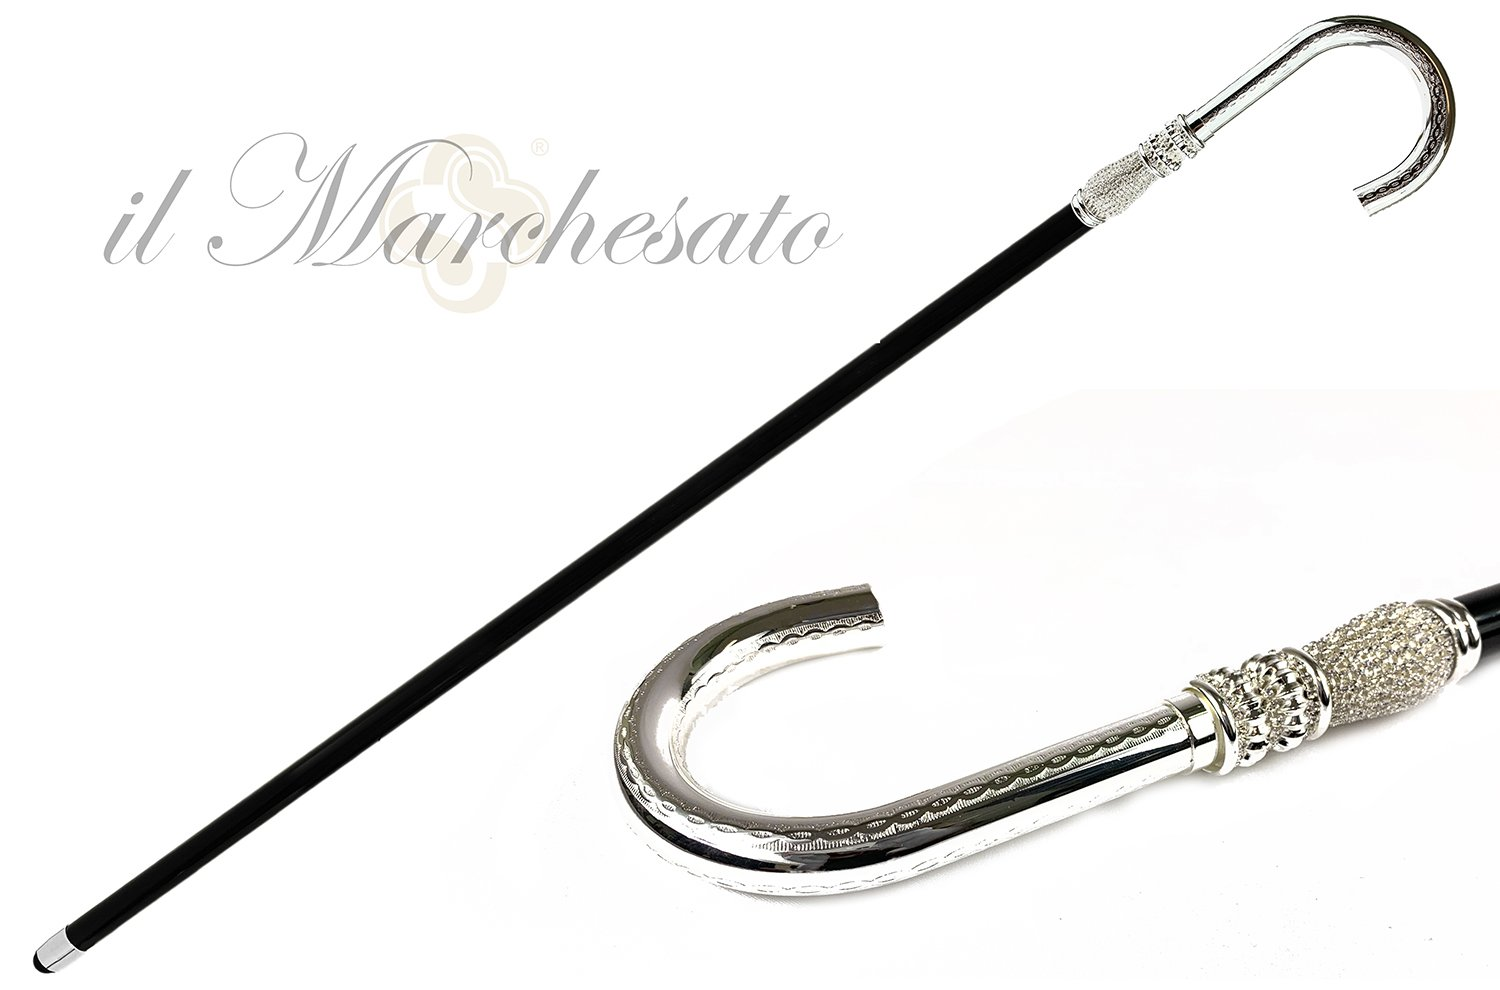 Curved Walking cane for Man in silver-plated brass and crystals - IL MARCHESATO LUXURY UMBRELLAS, CANES AND SHOEHORNS